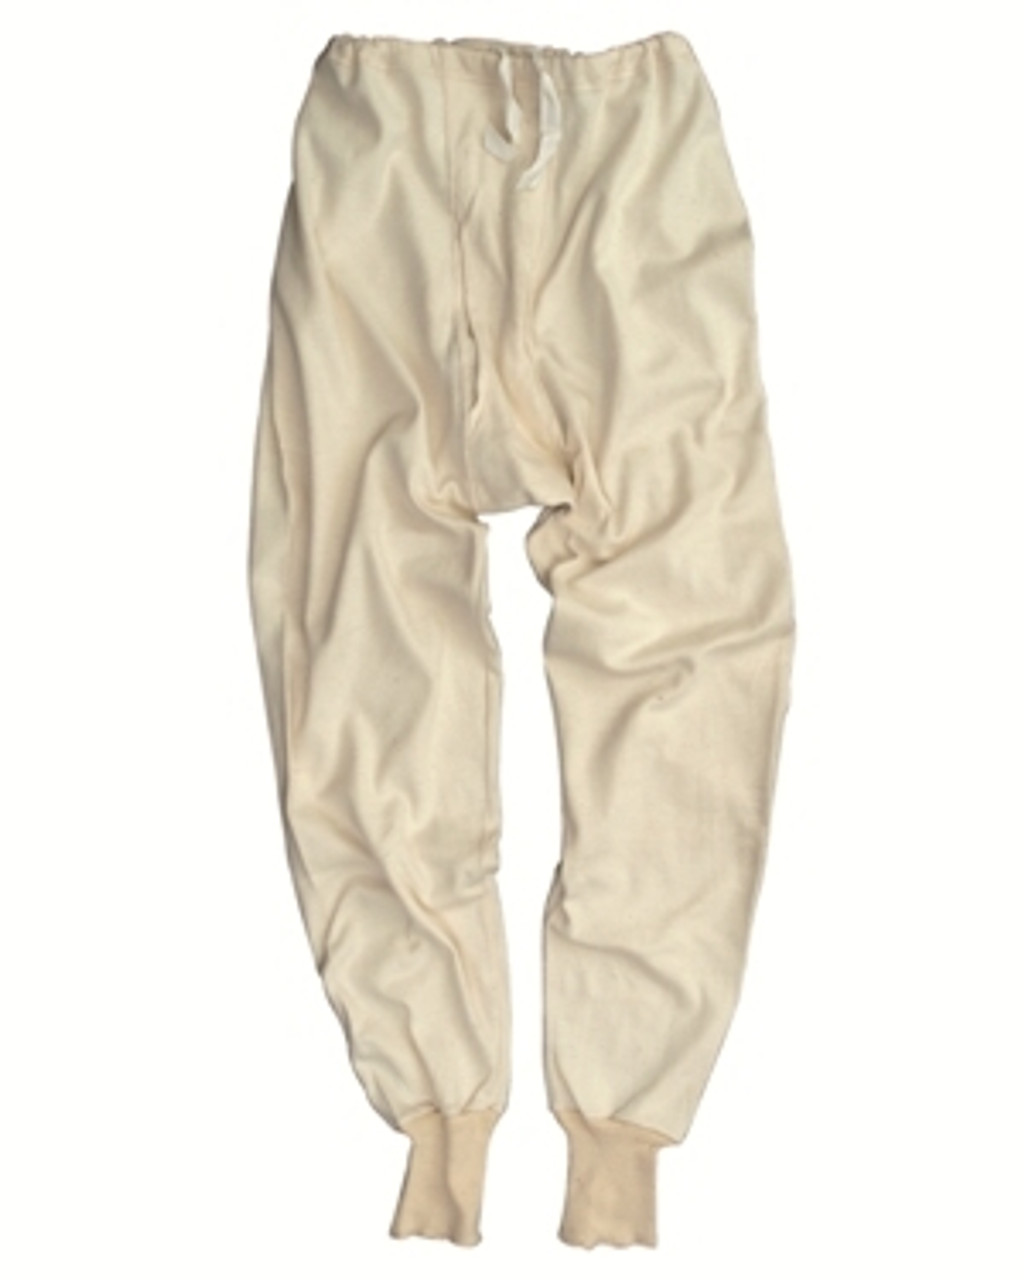 Czech Beige/Grey Long John Pants from Hessen Surplus